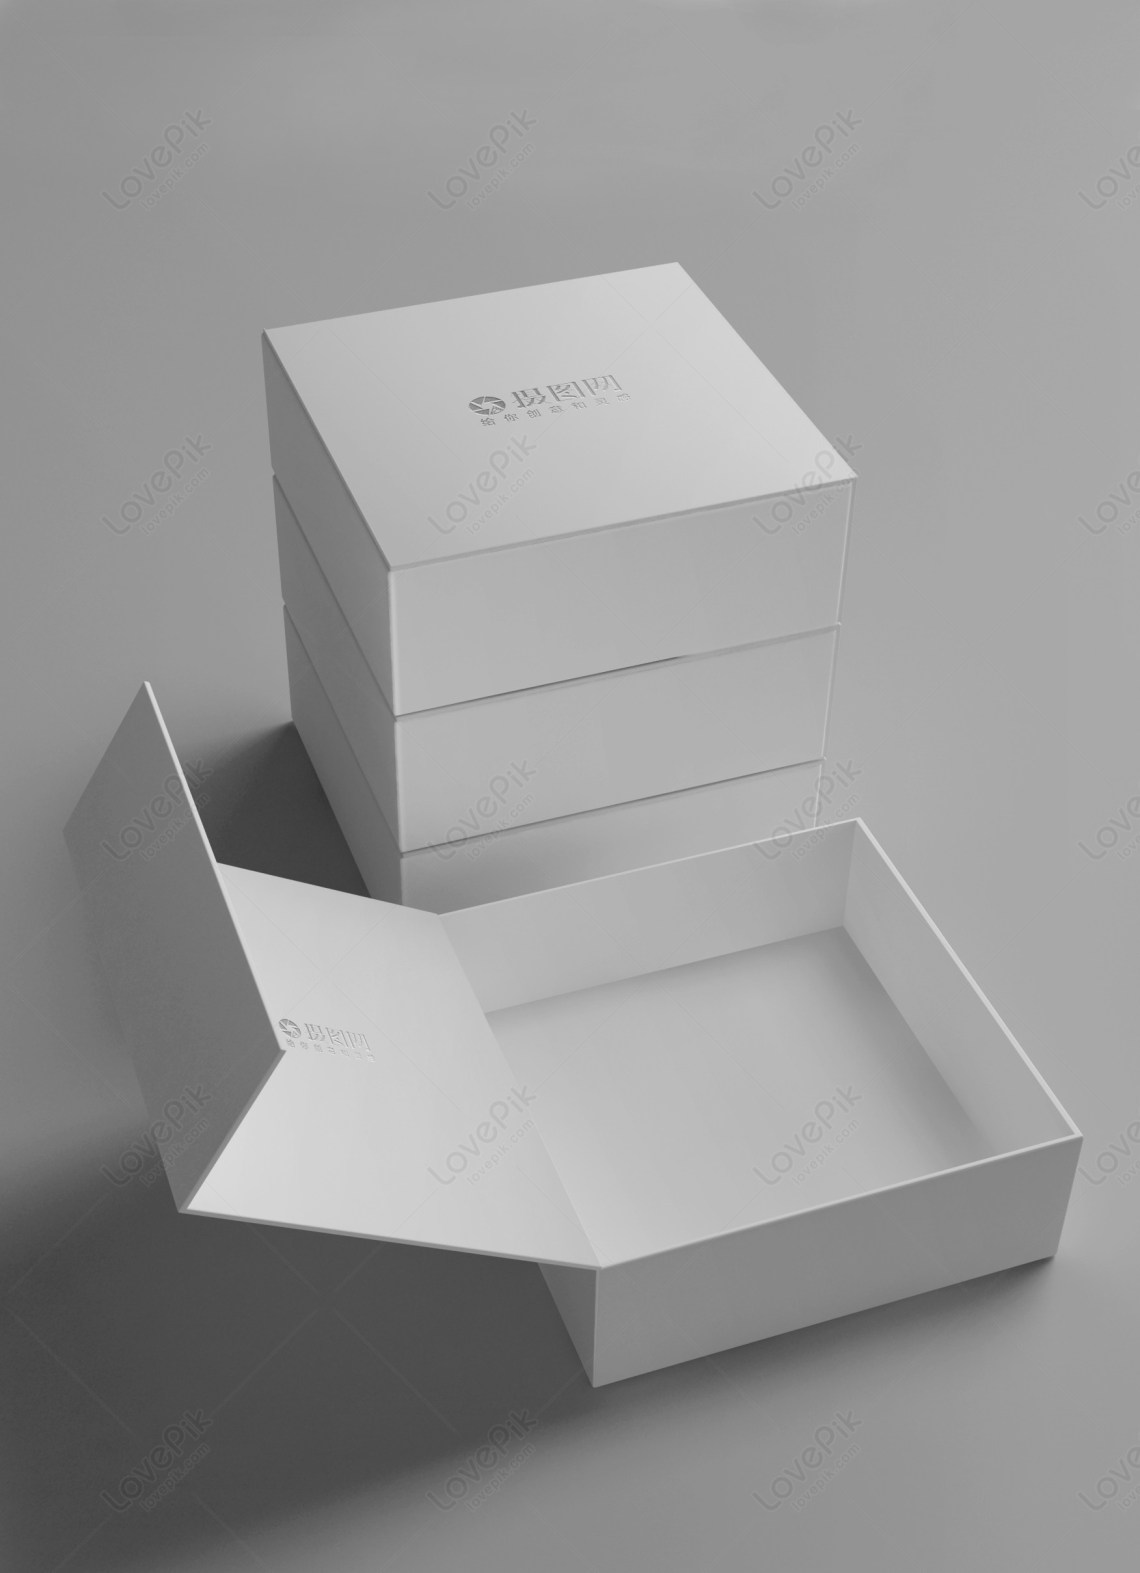 Download White gift box packaging mockup template image_picture ...